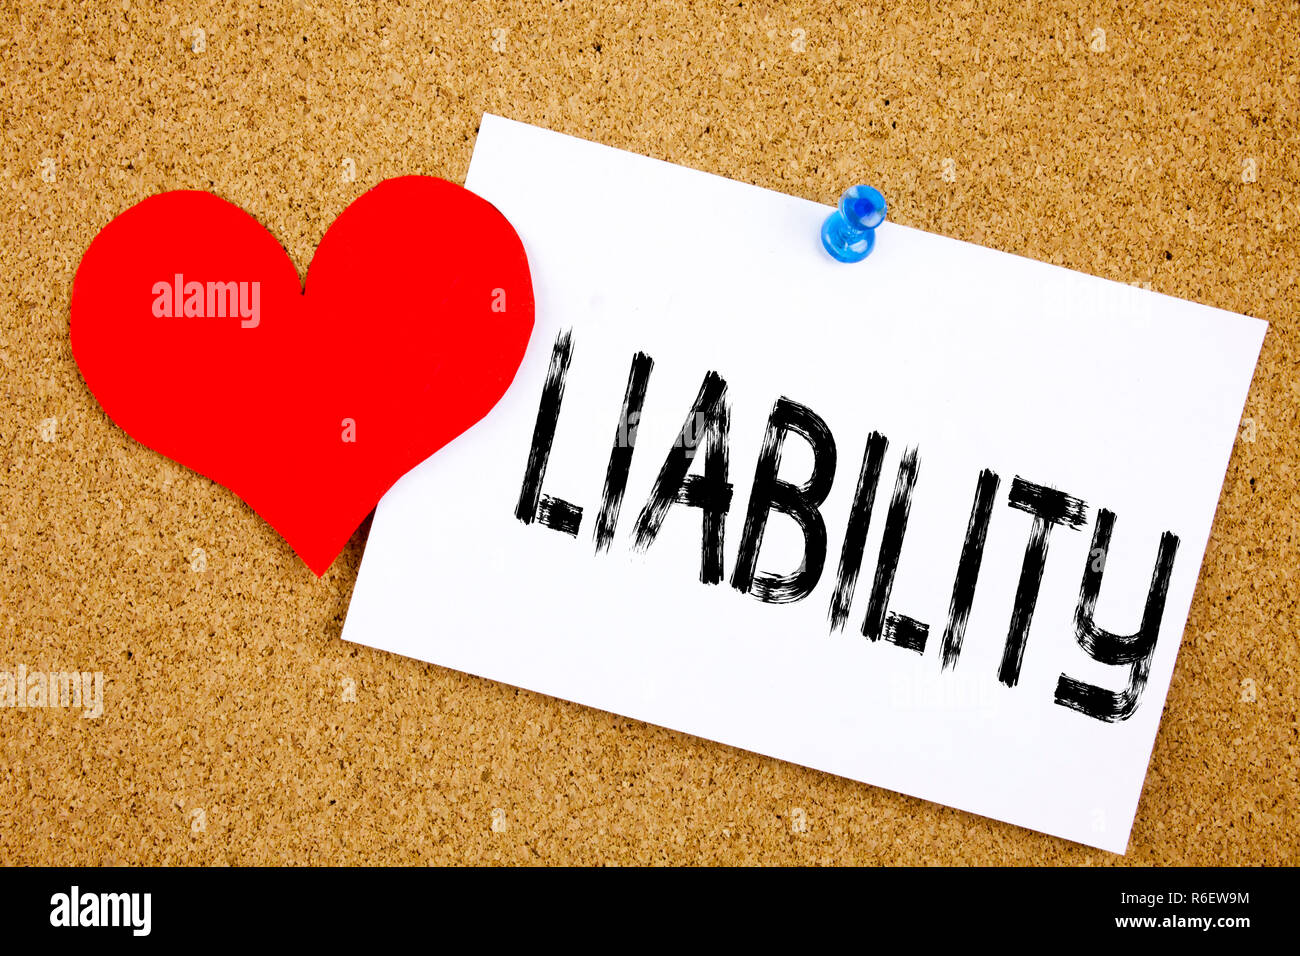 Conceptual hand writing text caption inspiration showing Liability concept for Accountability Legal Blame Risk and Love written on sticky note, reminder cork background with copy space - Stock Image